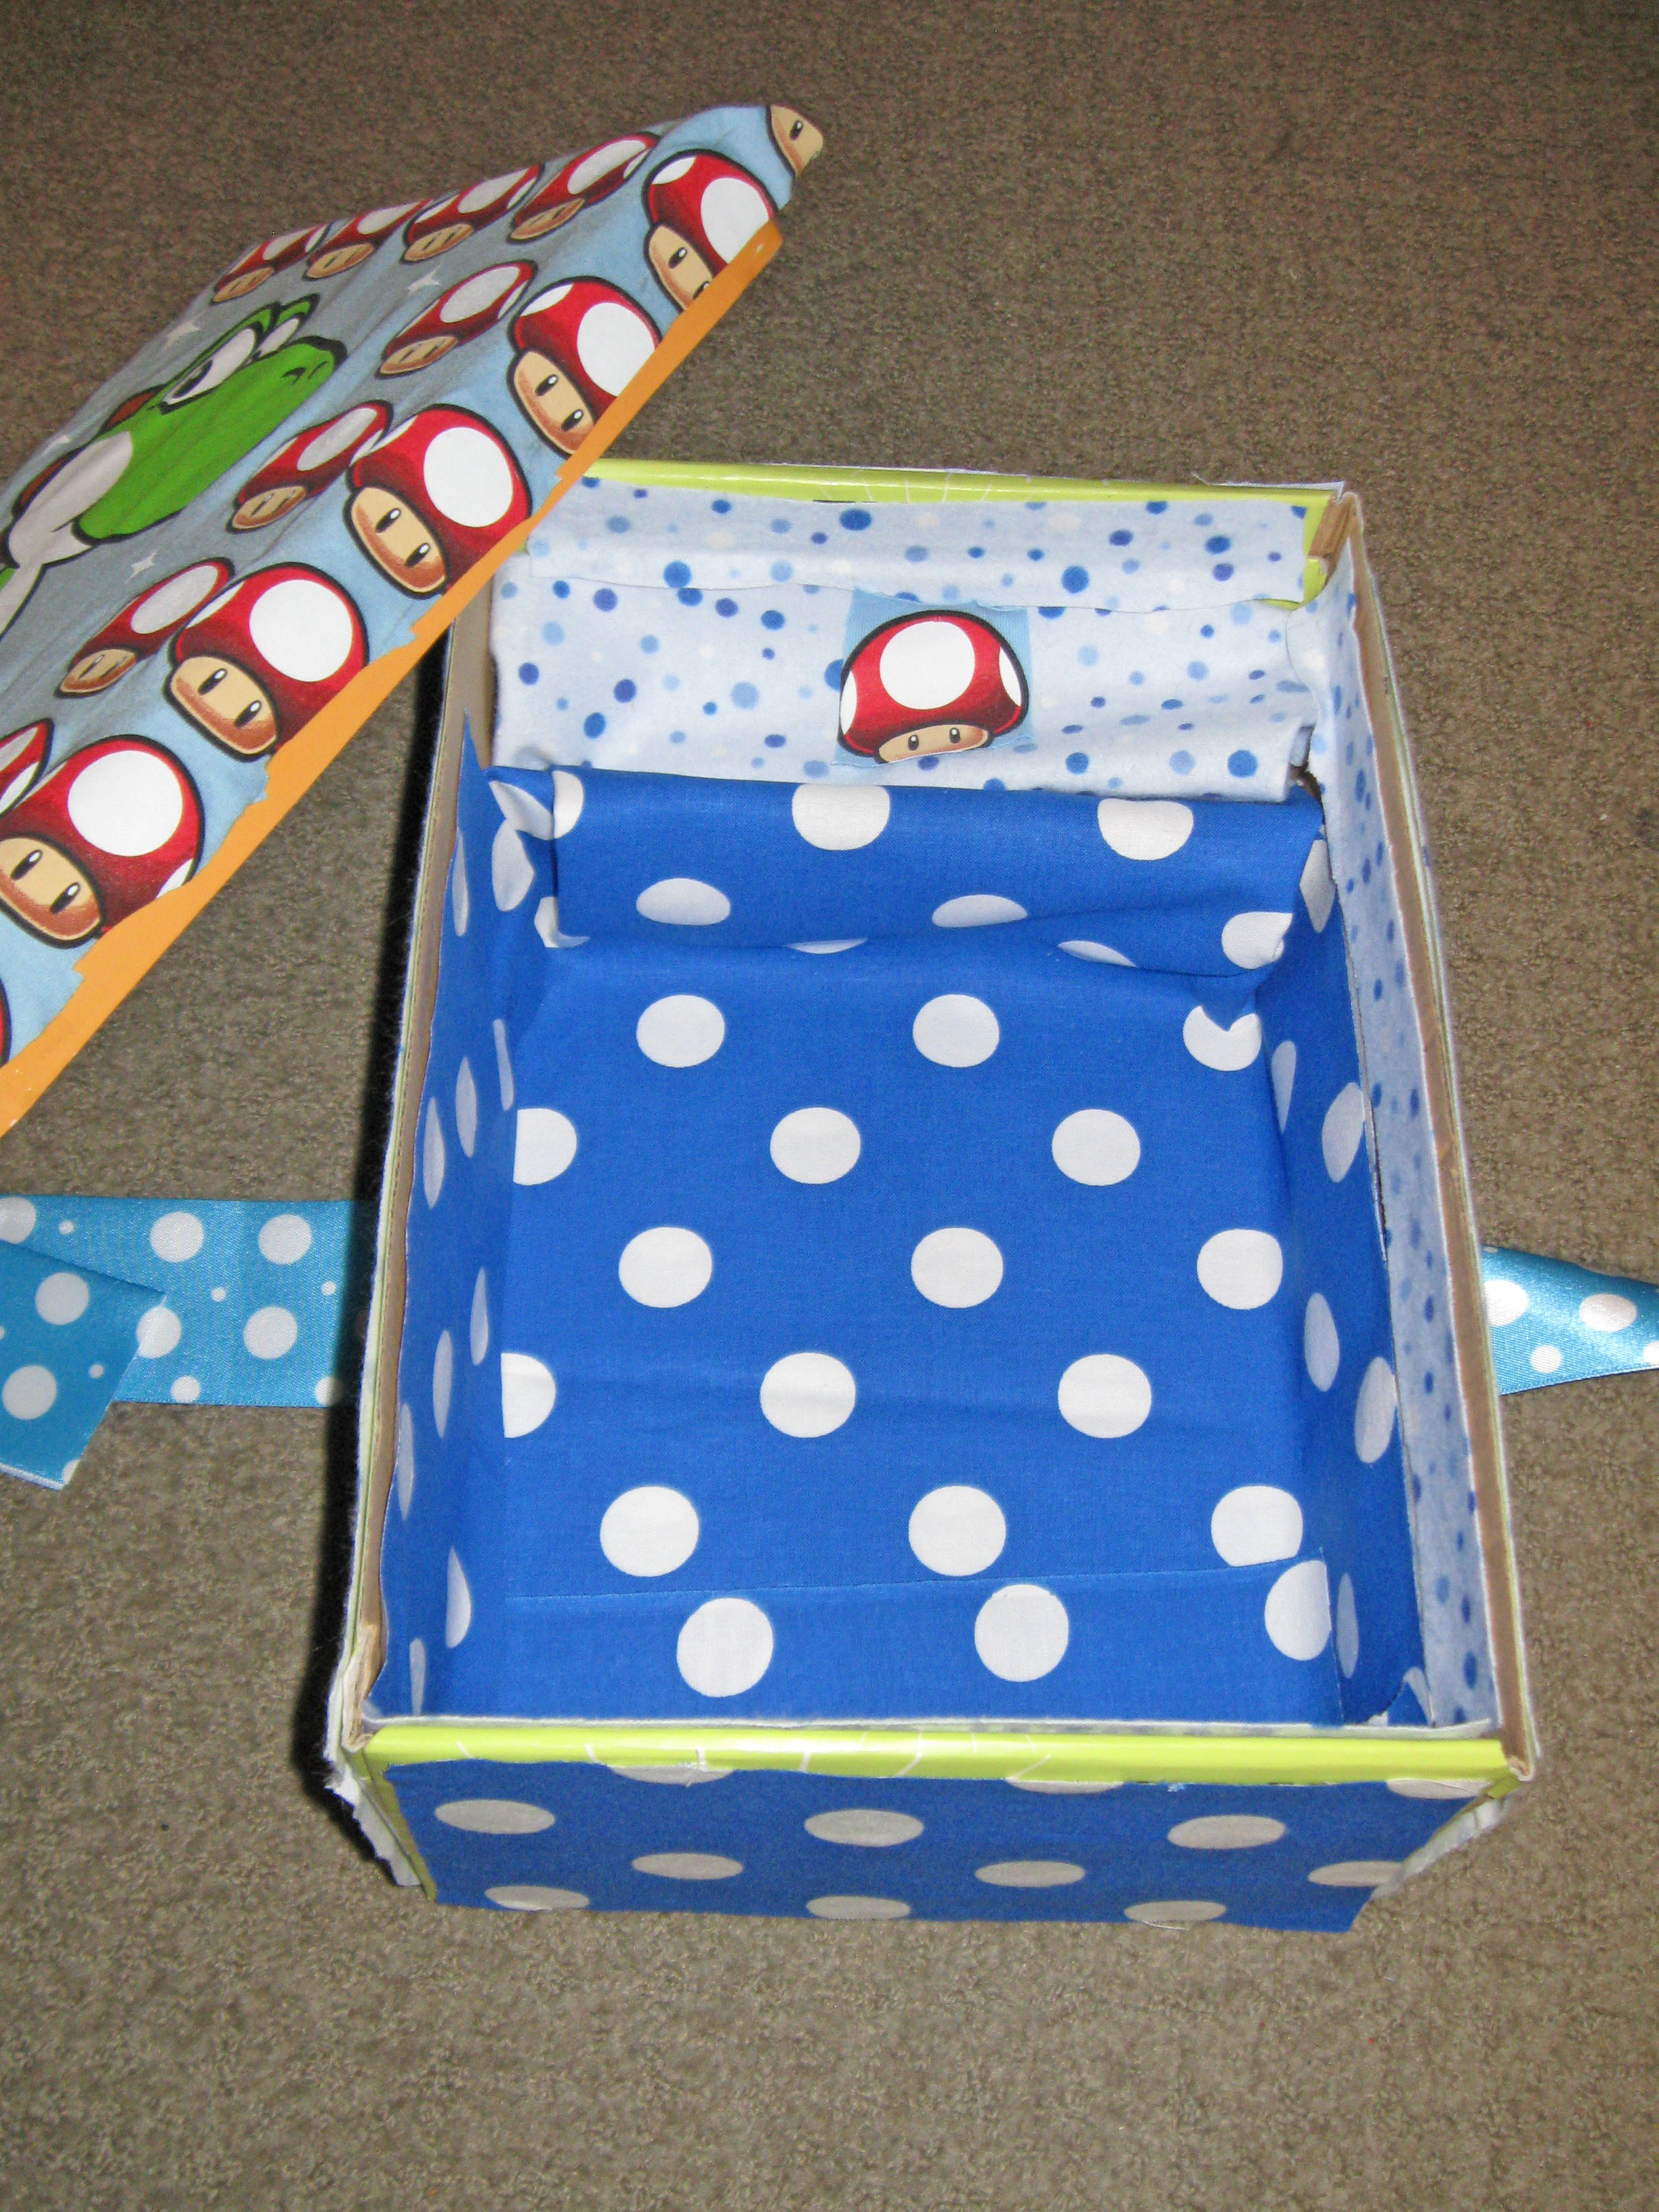 Picture of Crafty Mii: Create a Shoebox Storage Kit for Your Wii!